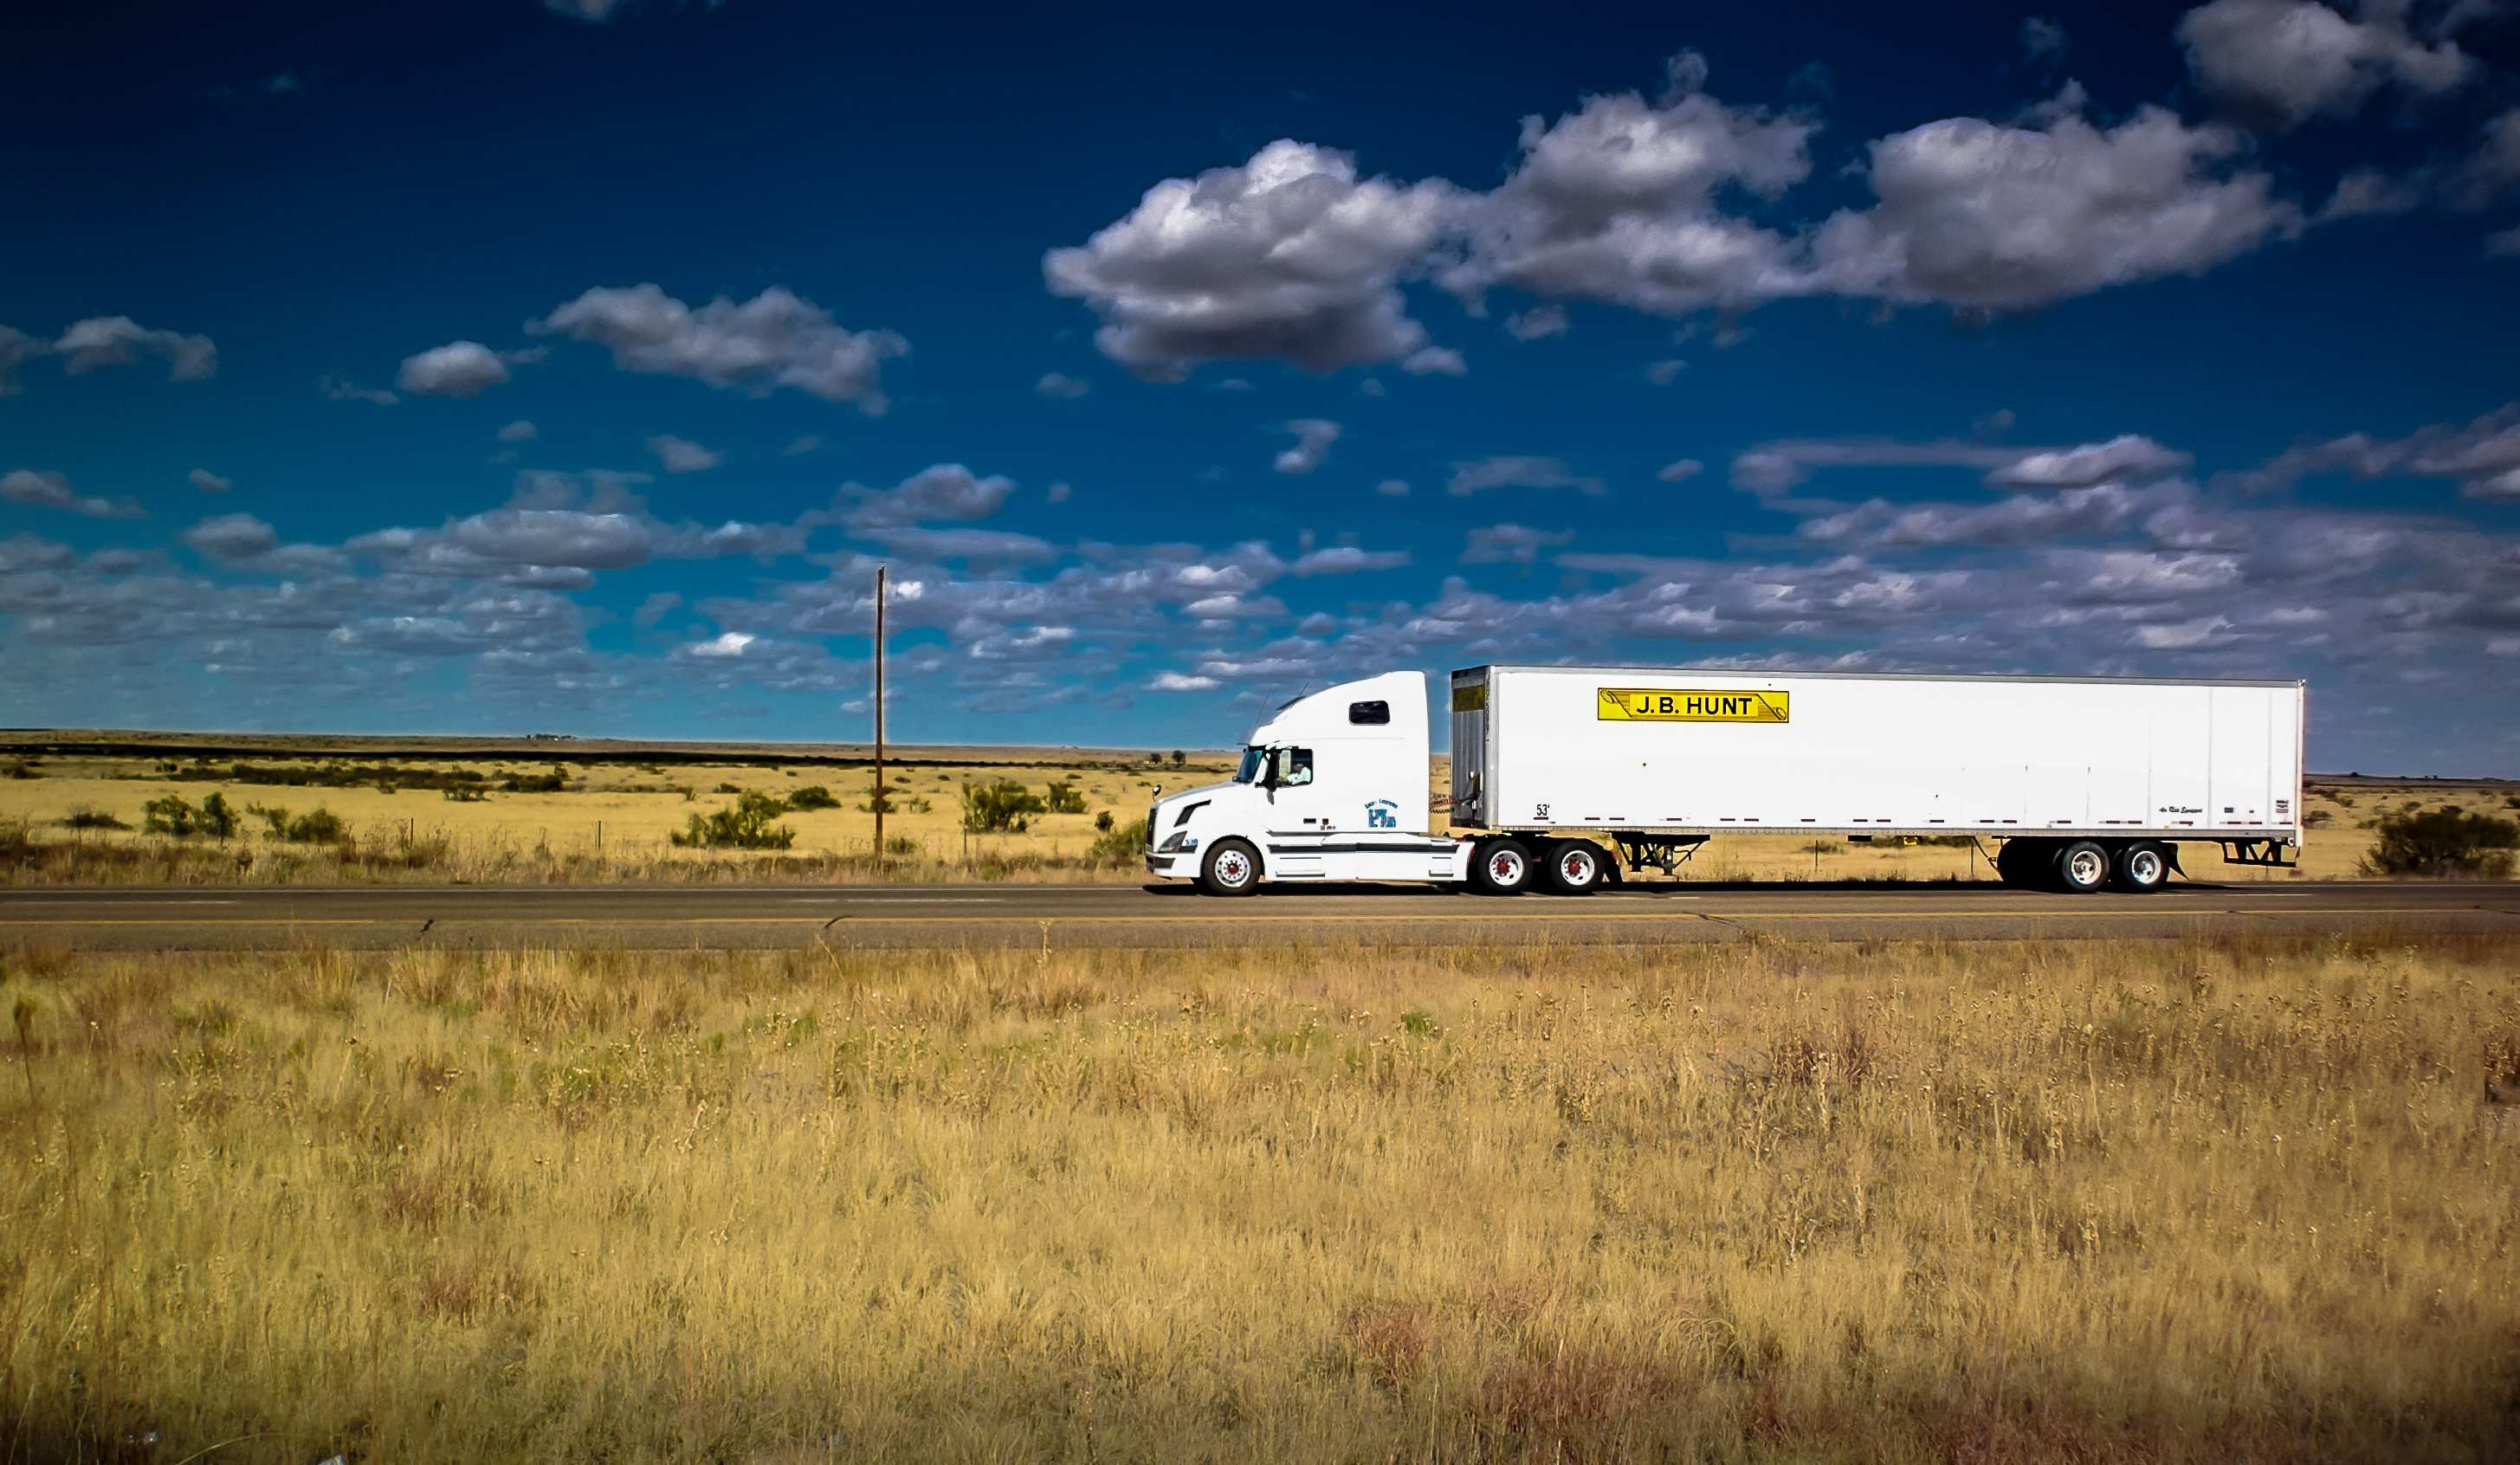 Four truckers reach $260k settlement with J.B. Hunt after alleged religious discrimination